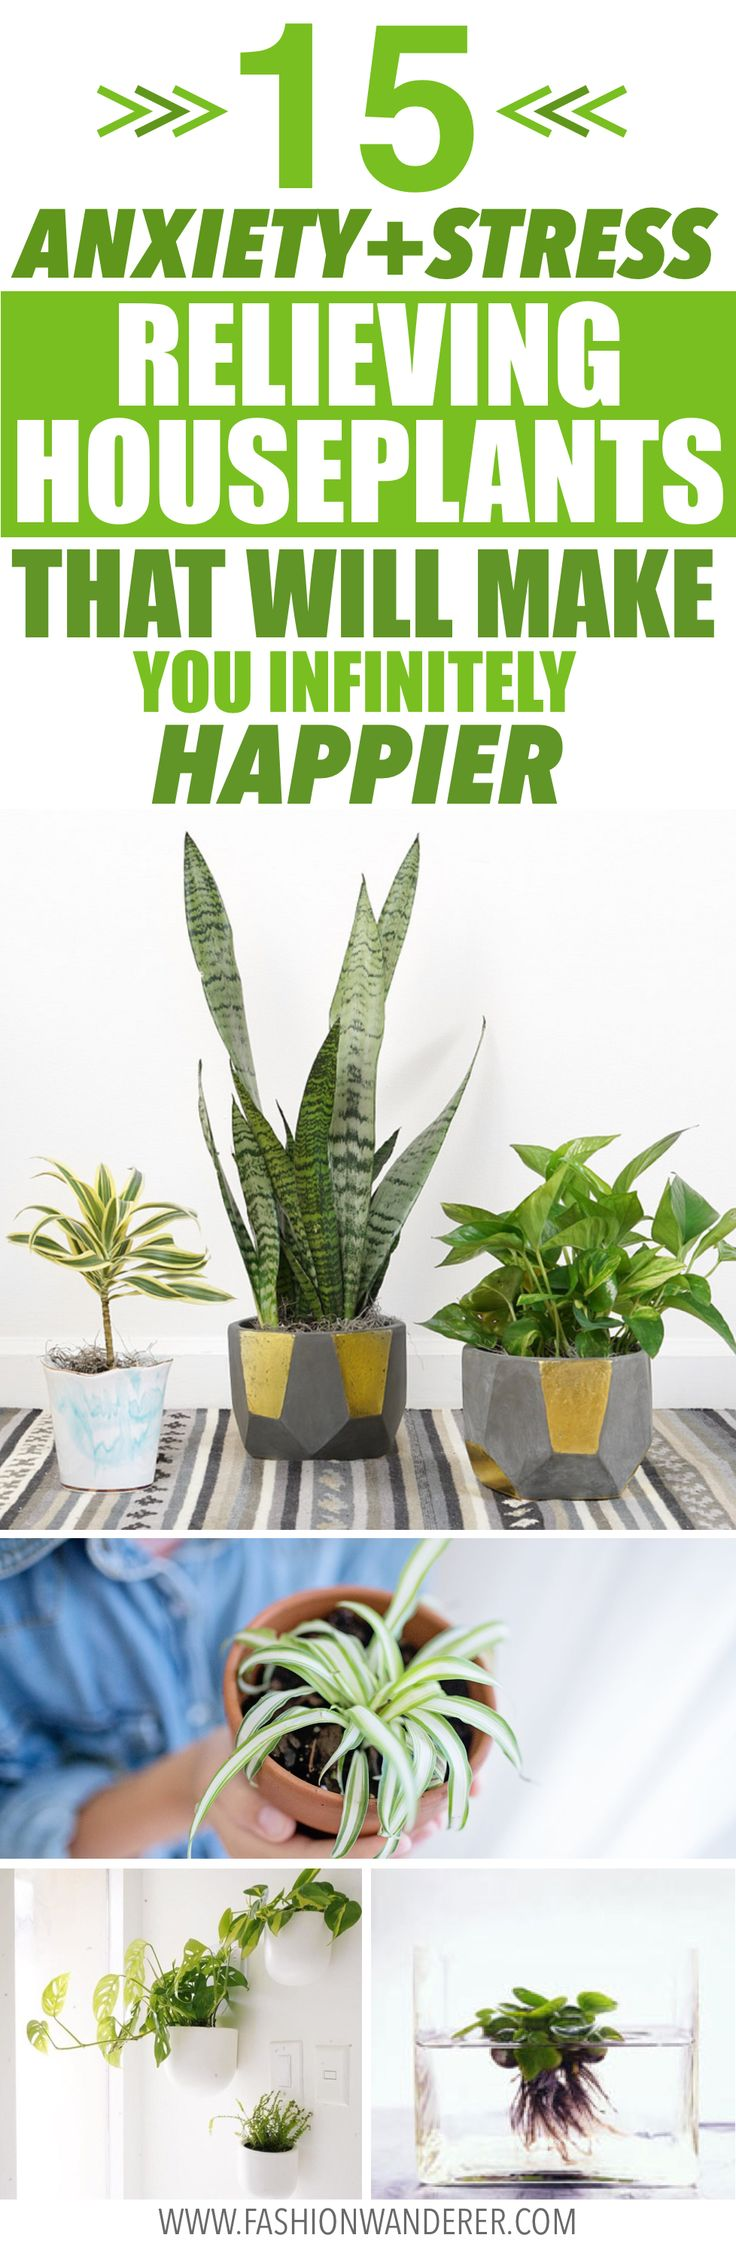 15 Anxiety and Stress Relieving Houseplants That Will Make You Infinitely Happier